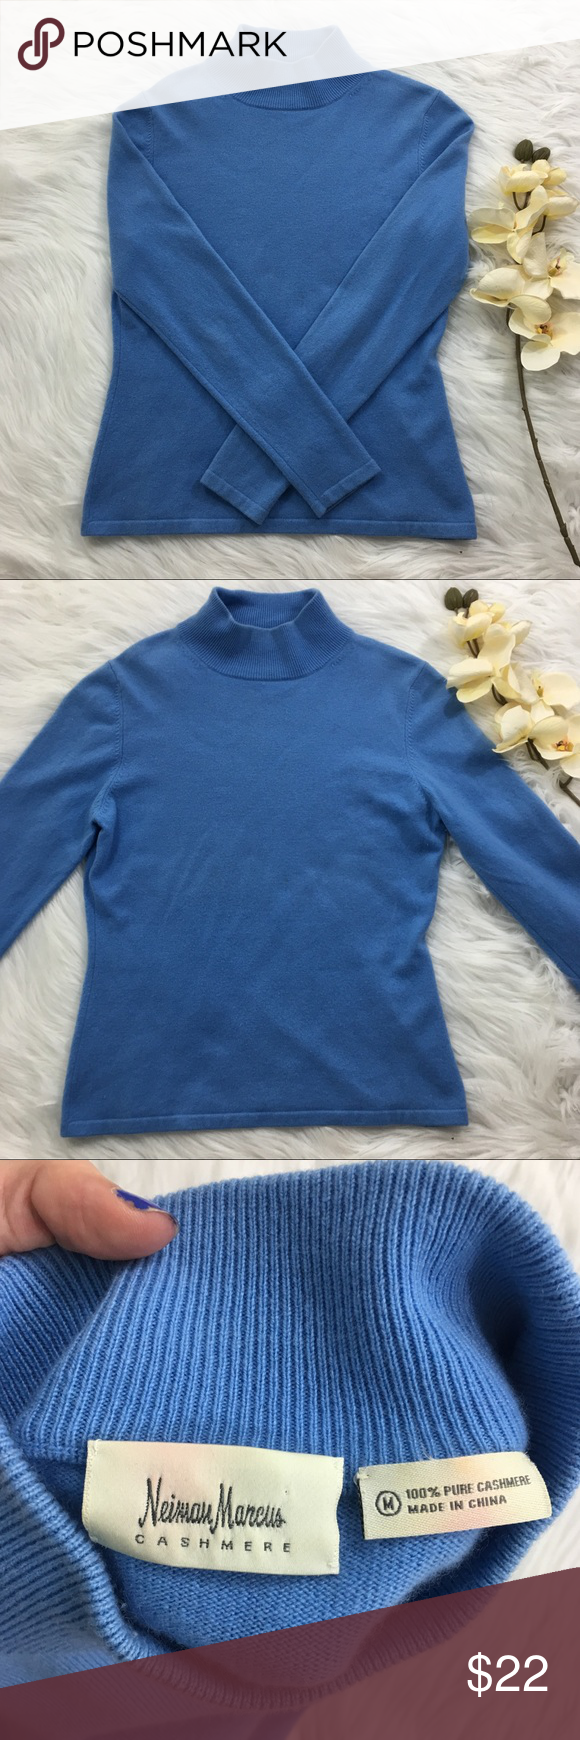 Blue Cashmere Sweater Beautiful cashmere sweater from Neimans ...